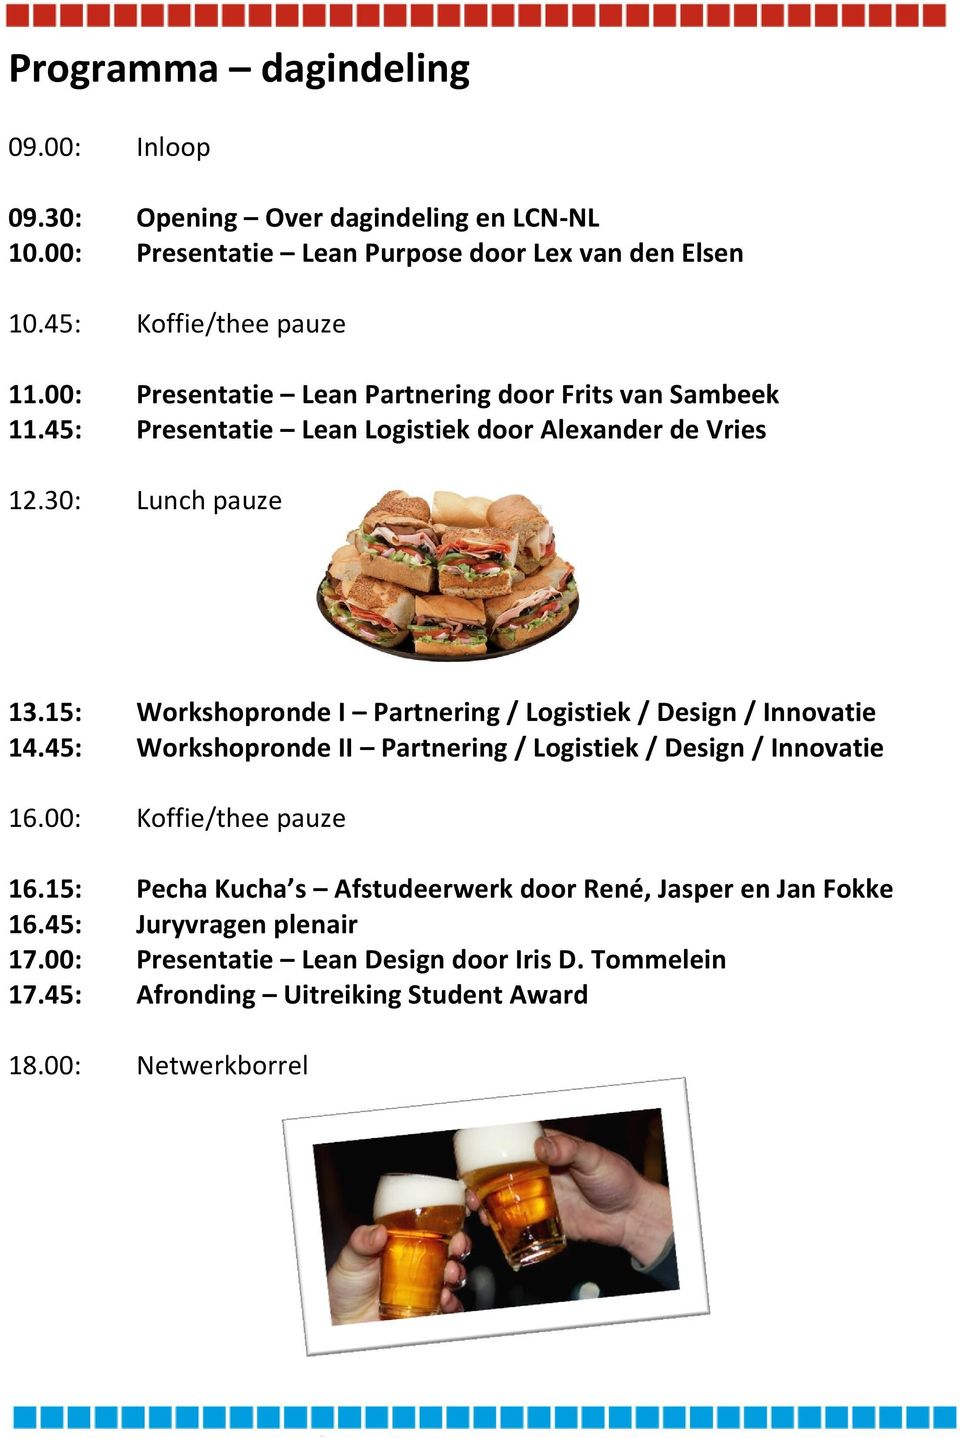 15: Workshopronde I Partnering / Logistiek / Design / Innovatie 14.45: Workshopronde II Partnering / Logistiek / Design / Innovatie 16.00: Koffie/thee pauze 16.